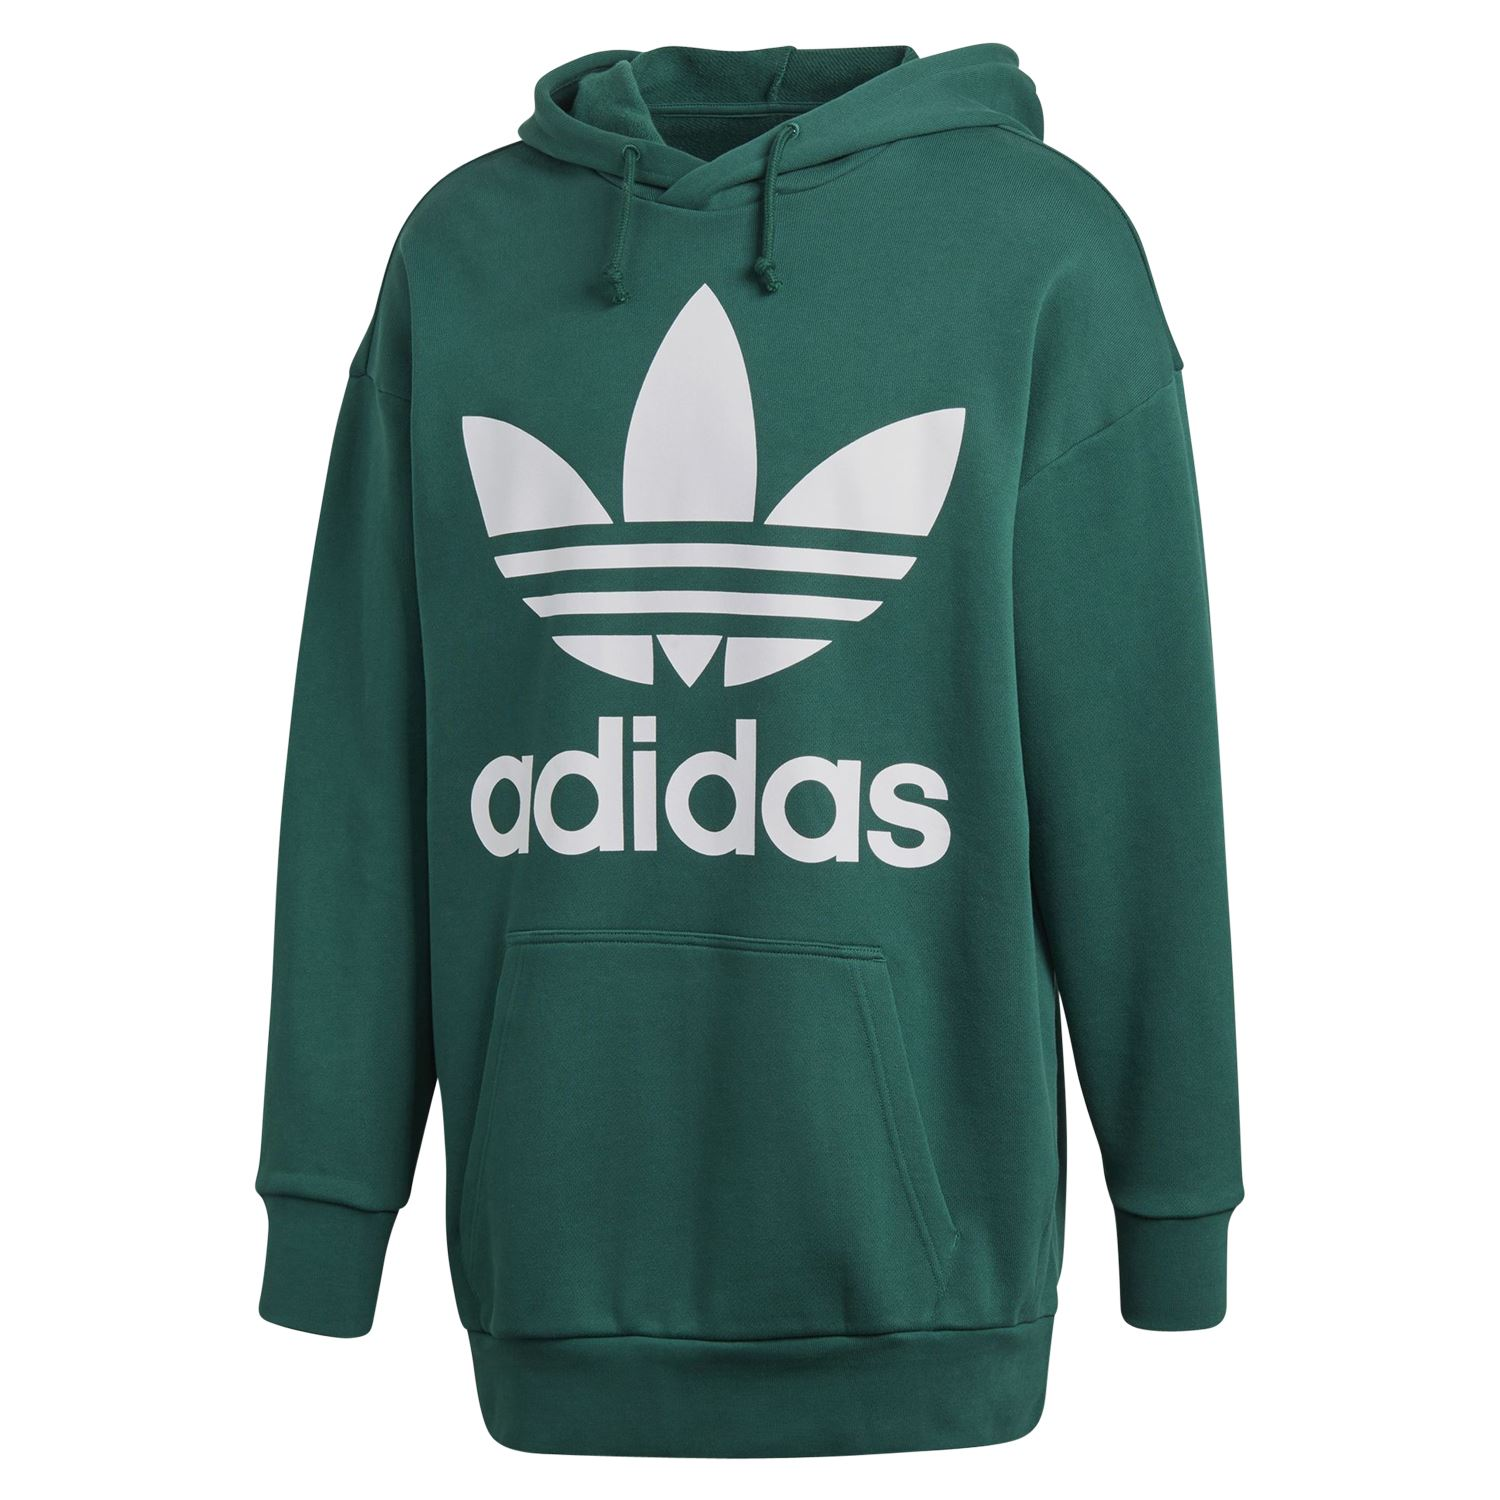 56a138cfb59 adidas ORIGINALS MEN'S TREFOIL OVERHEAD HOODIE GREEN RETRO PULLOVER GYM WARM